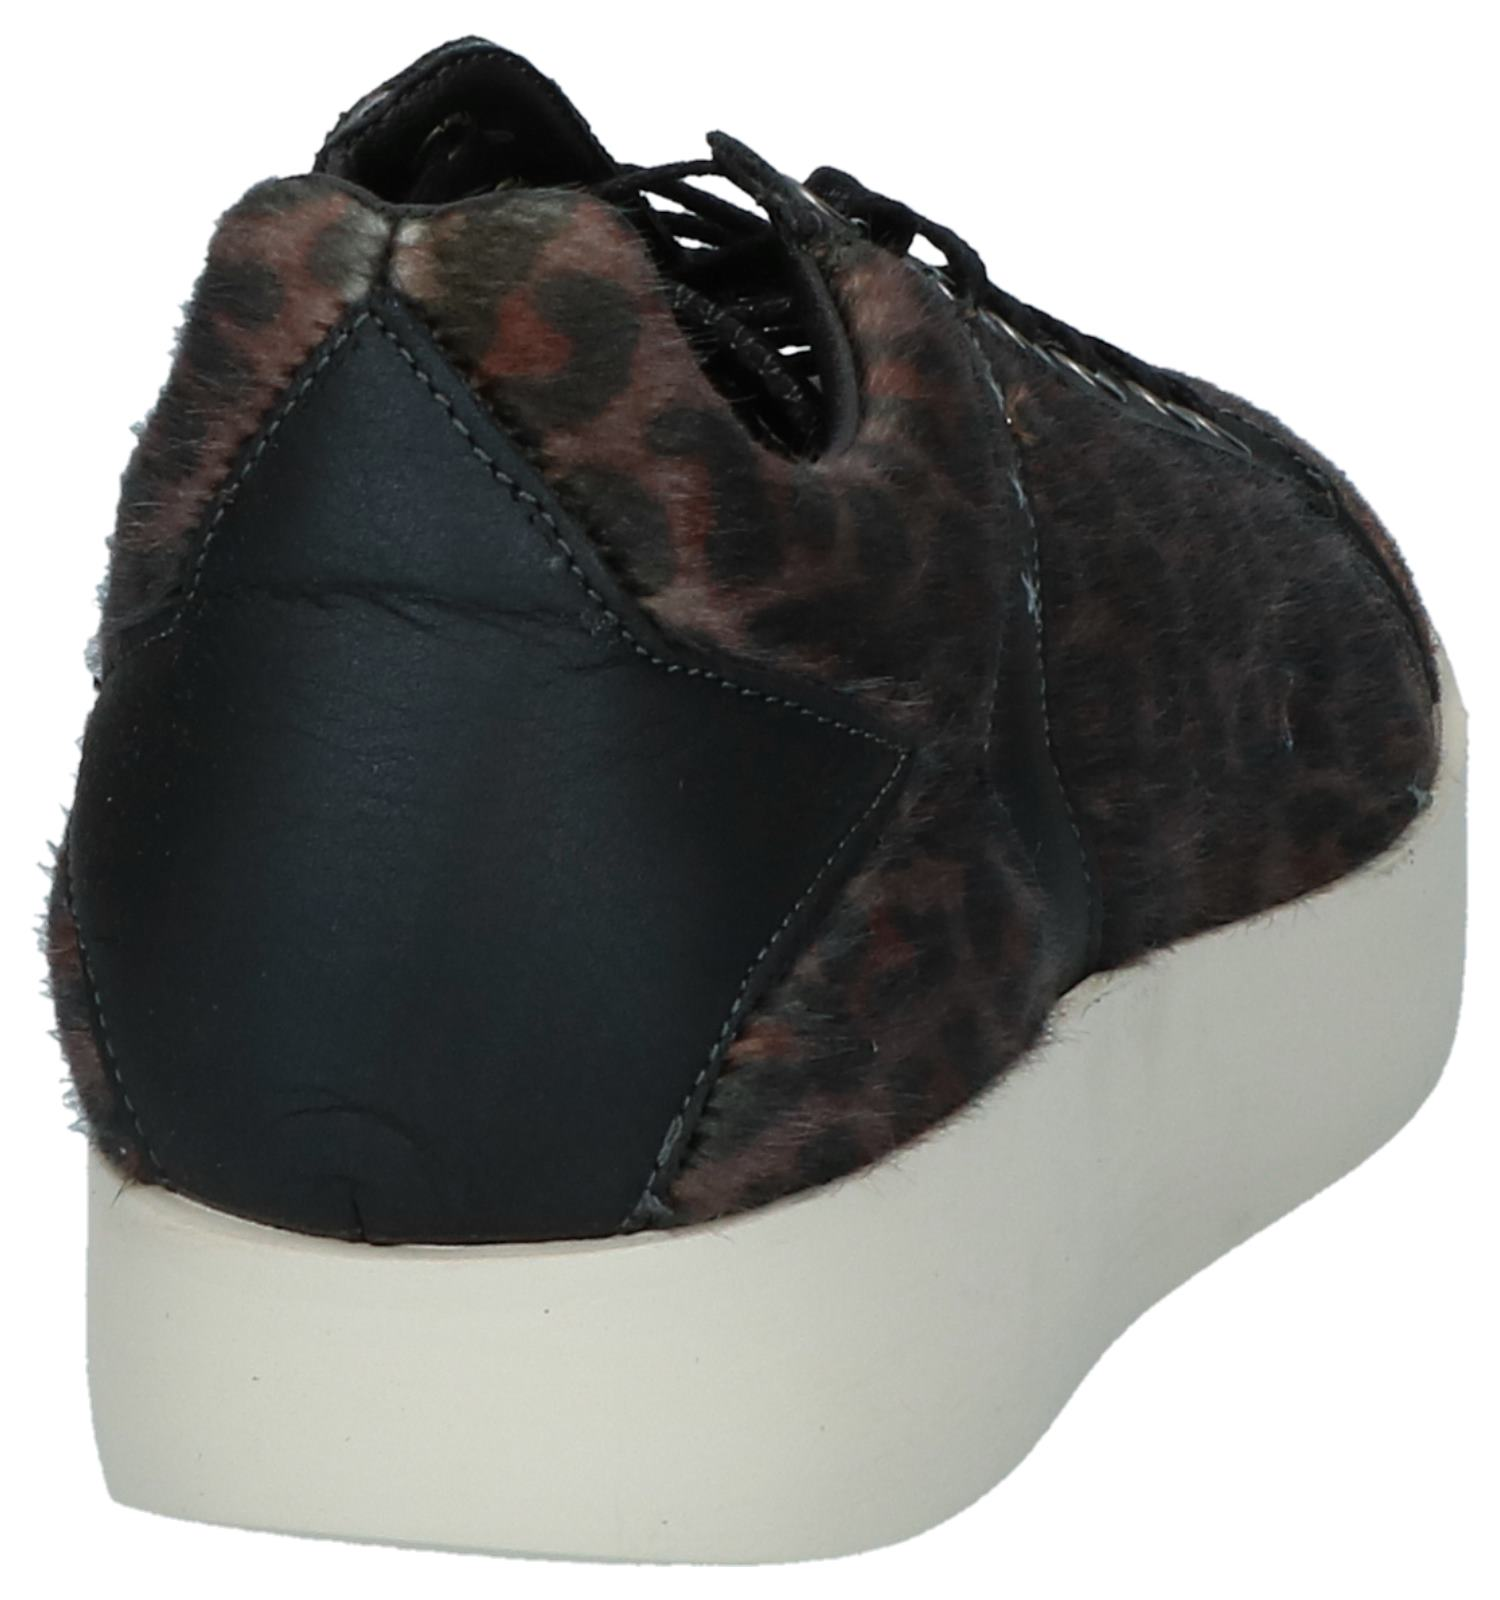 Sneakers Leopard Lecce Low D'oro Pantofola Donne Bruine EDIWH92